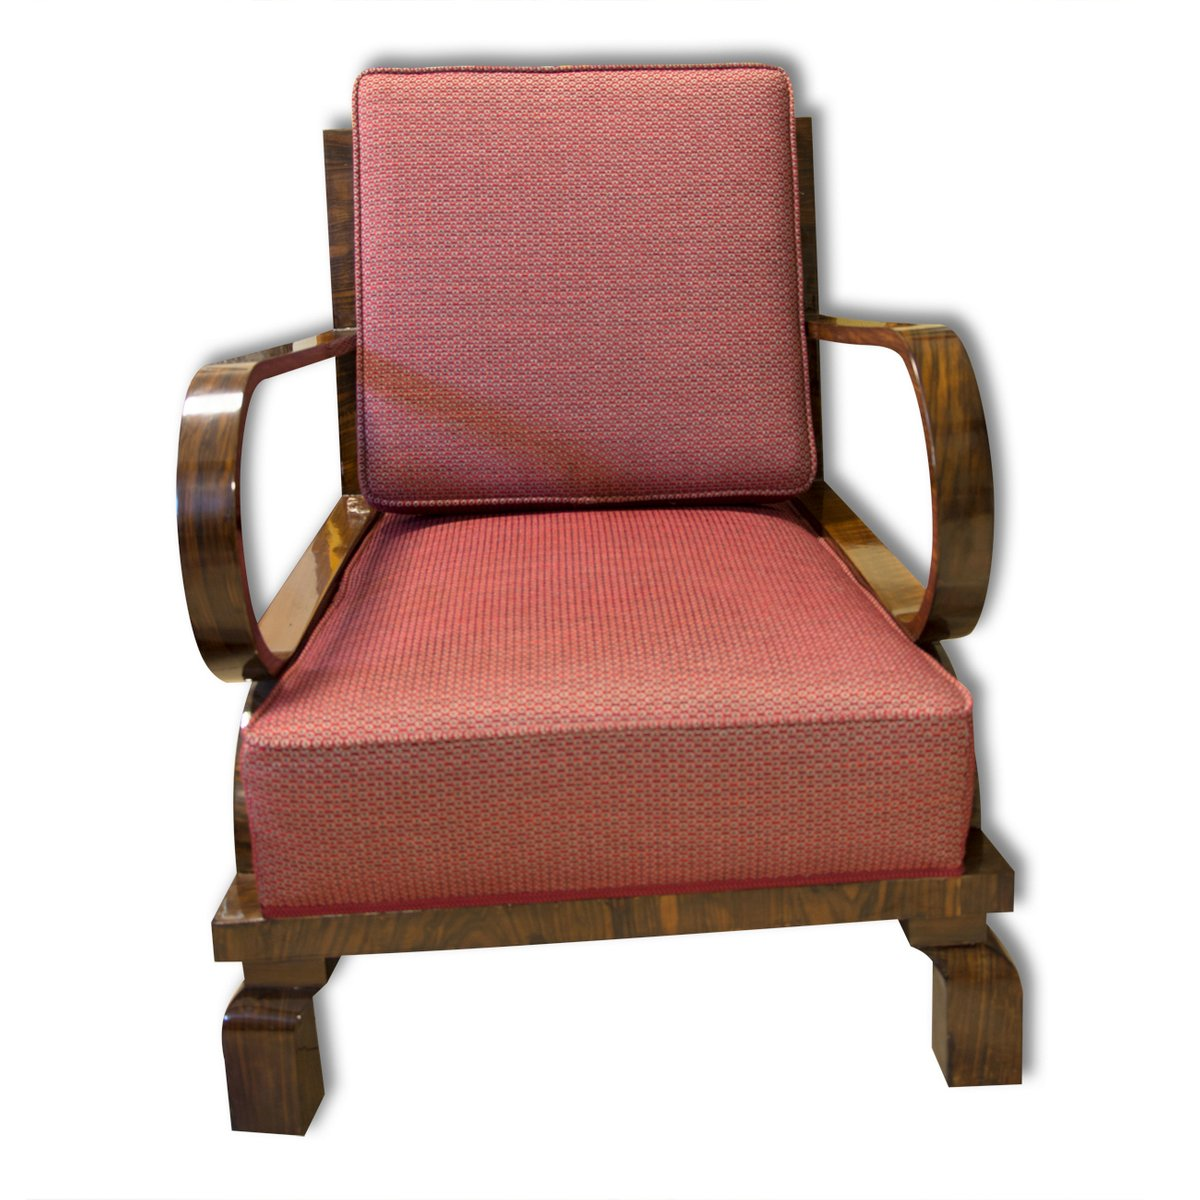 Czech Art Deco Armchairs 1930s Set Of 2 For Sale At Pamono